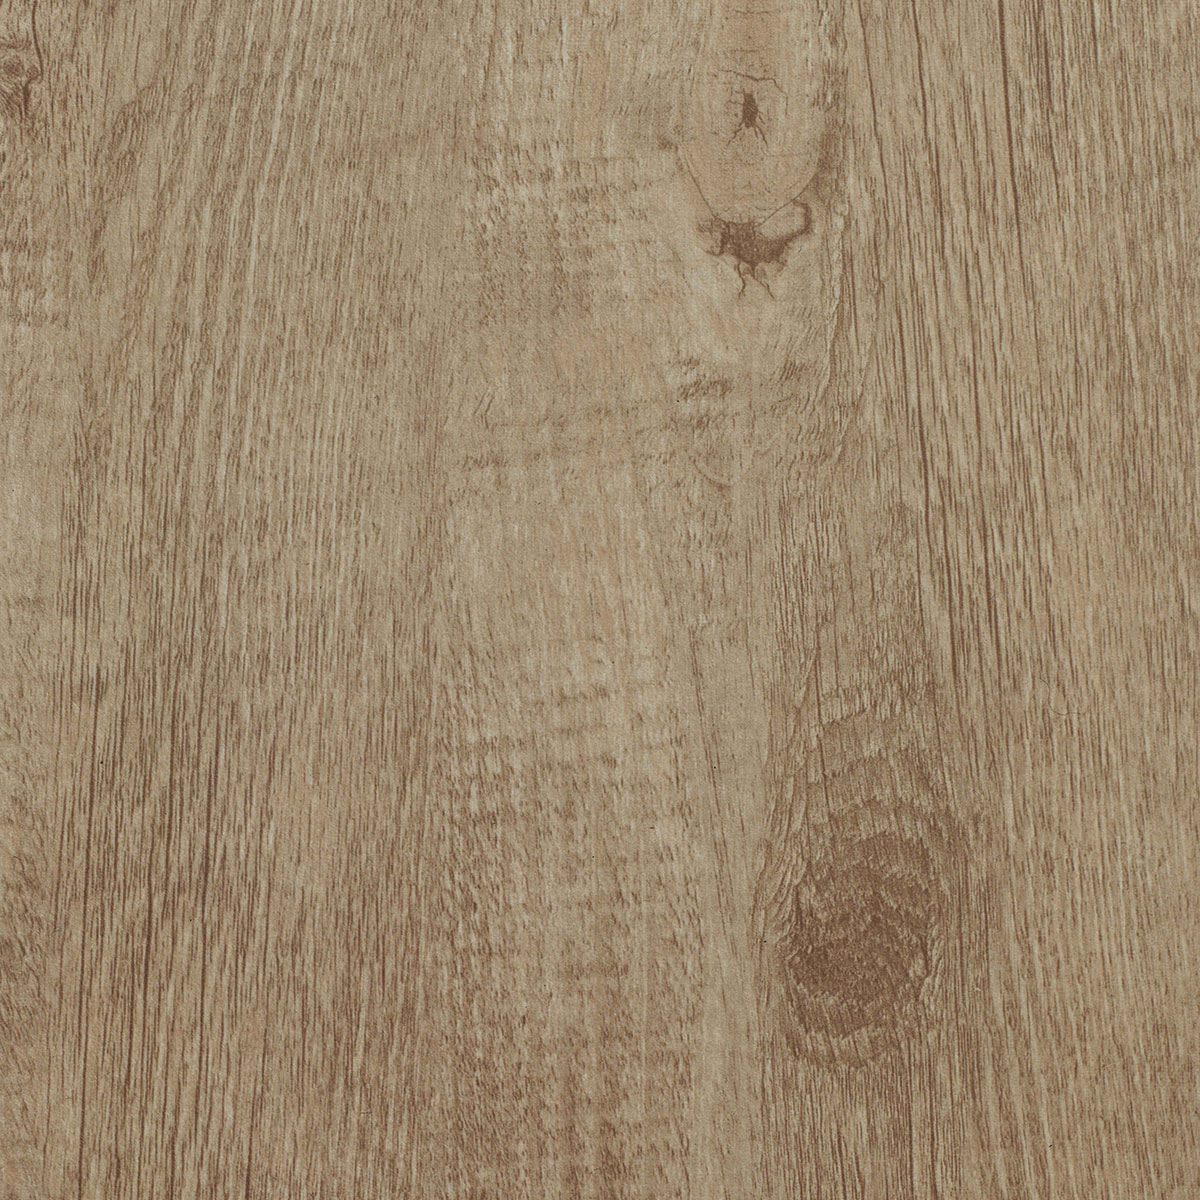 Knotwood Color: Driftwood